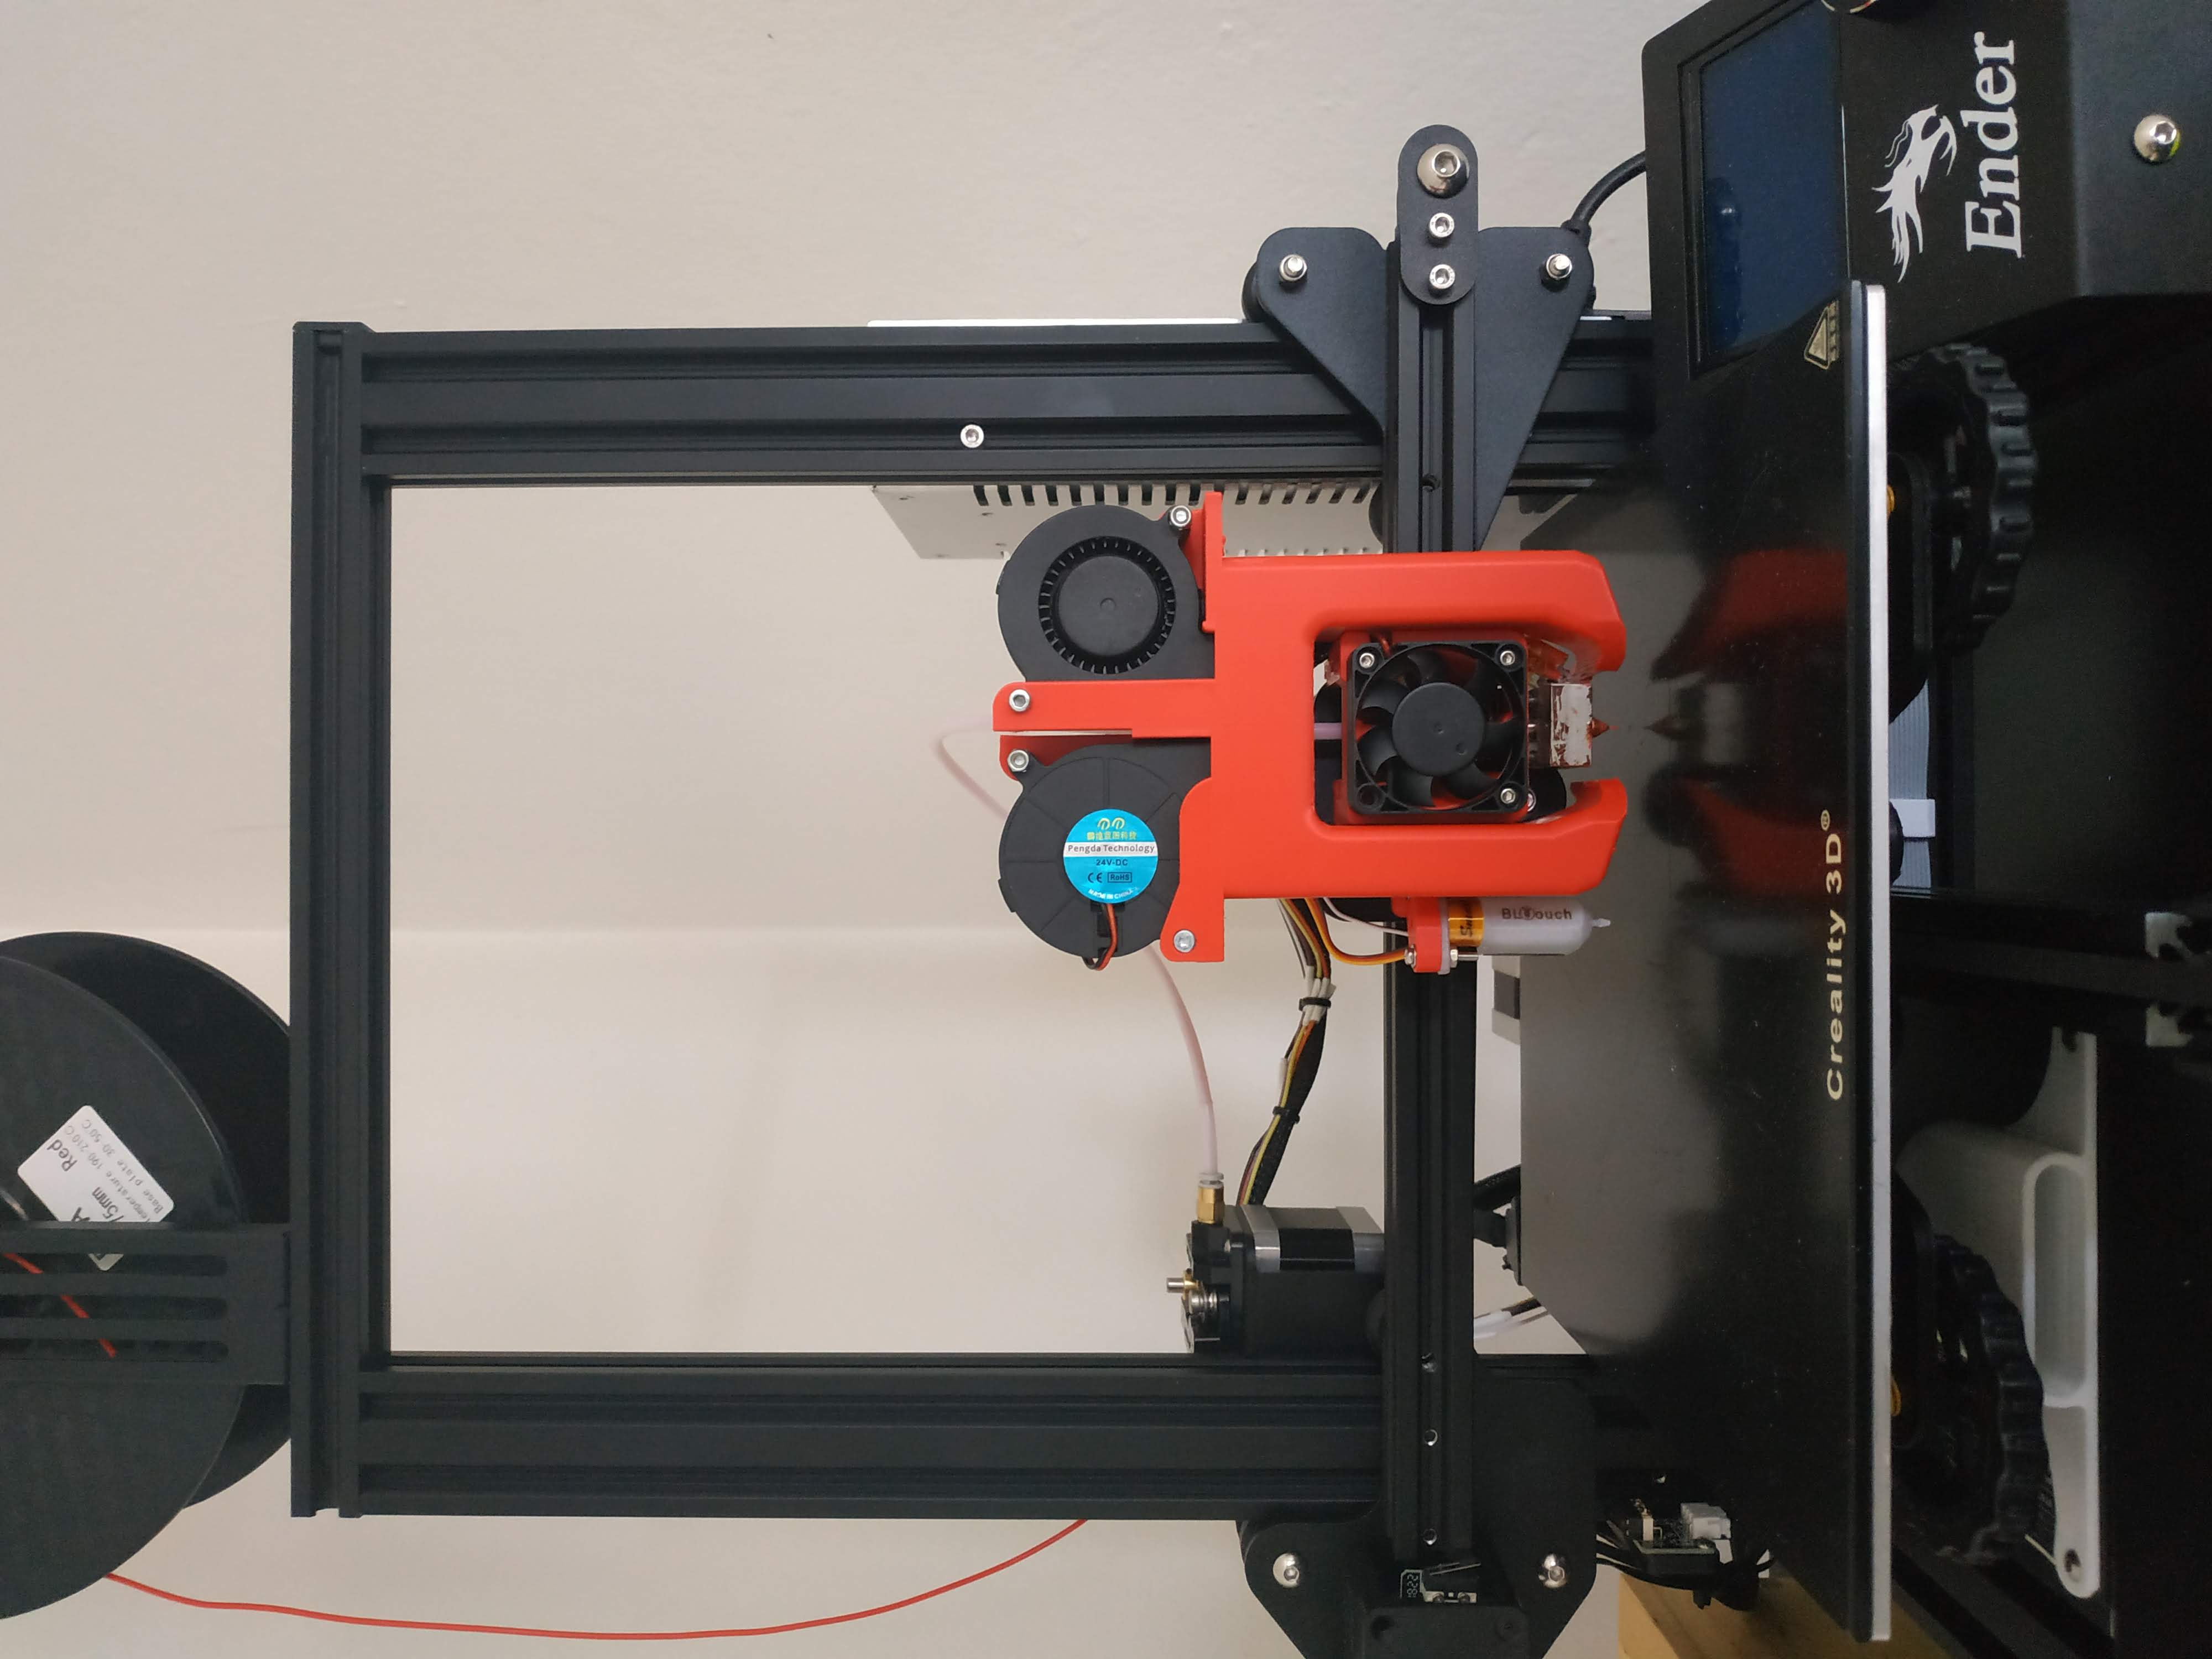 Ender 3 - BLTouch guide installation by ScienceOnThingiverse